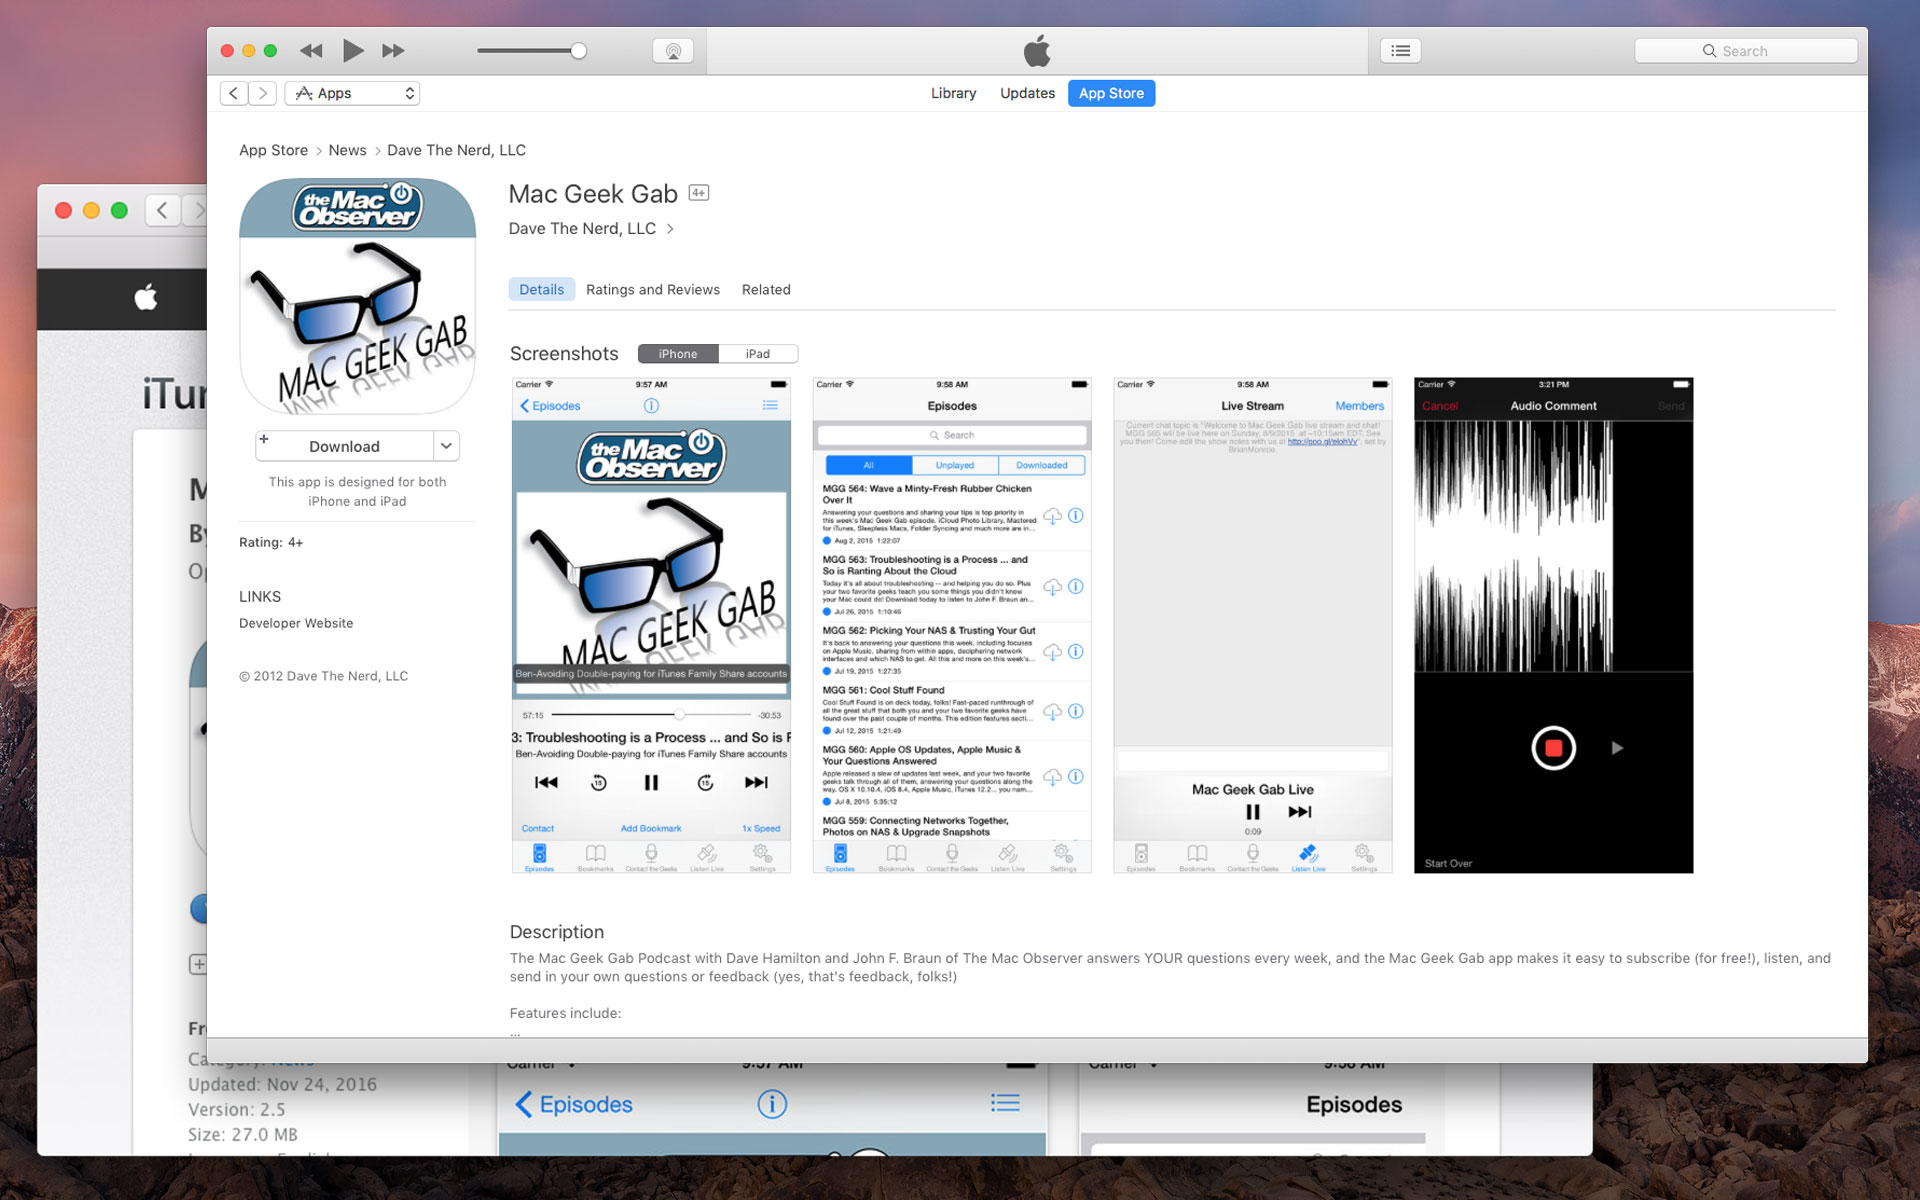 app store website itunes